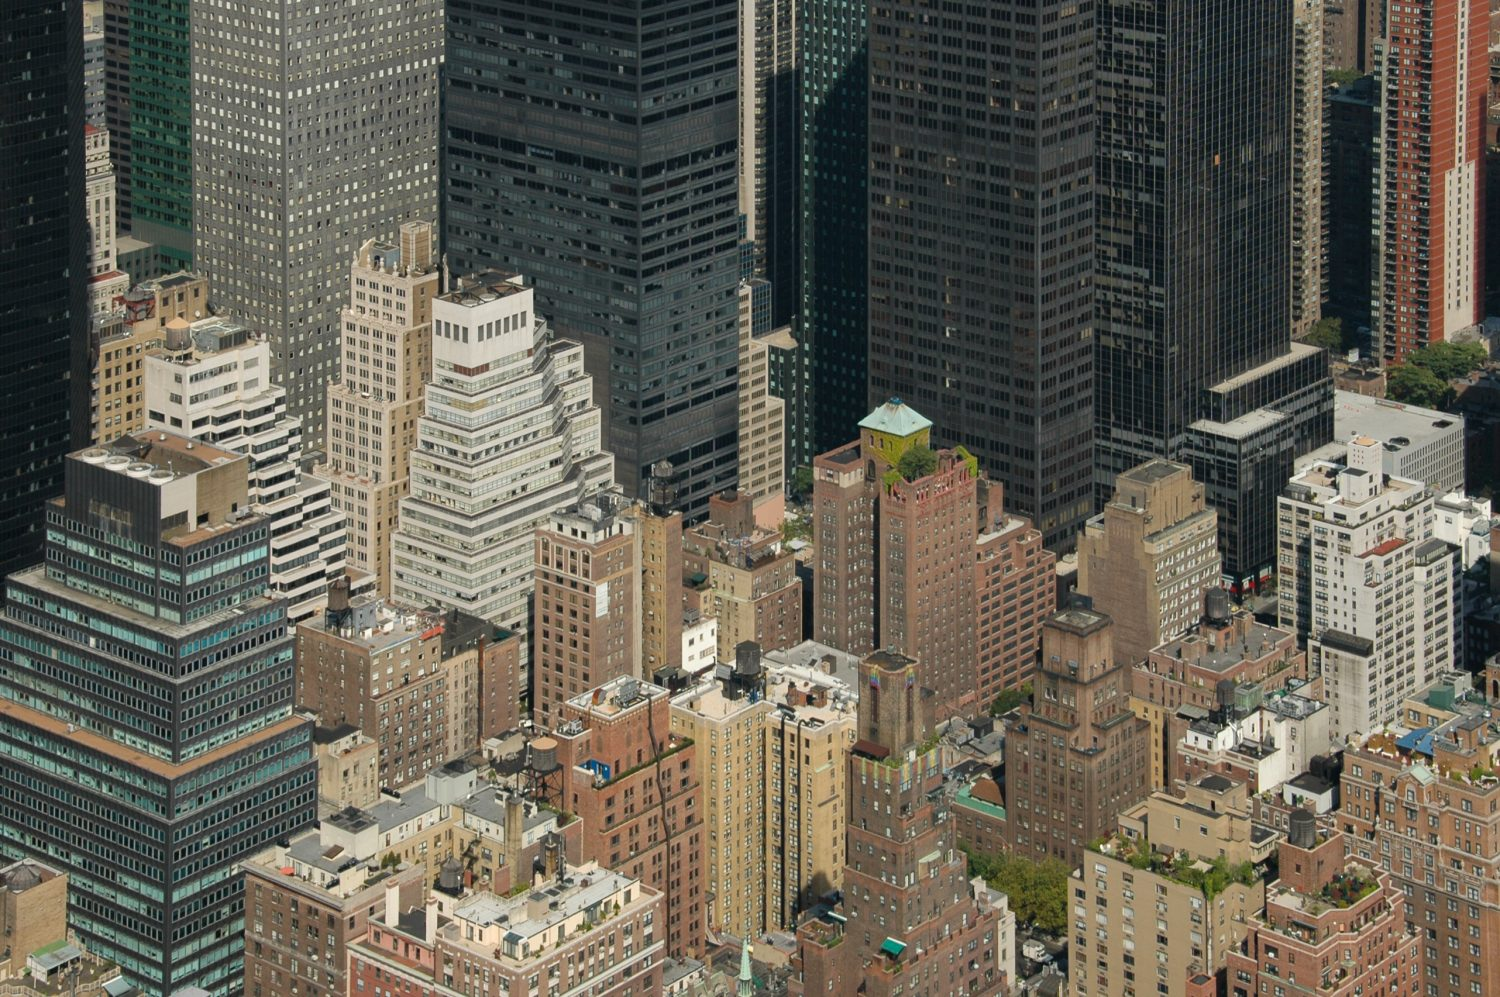 New York concrete jungle photographed from the Empire State Building Panoramic Terrace